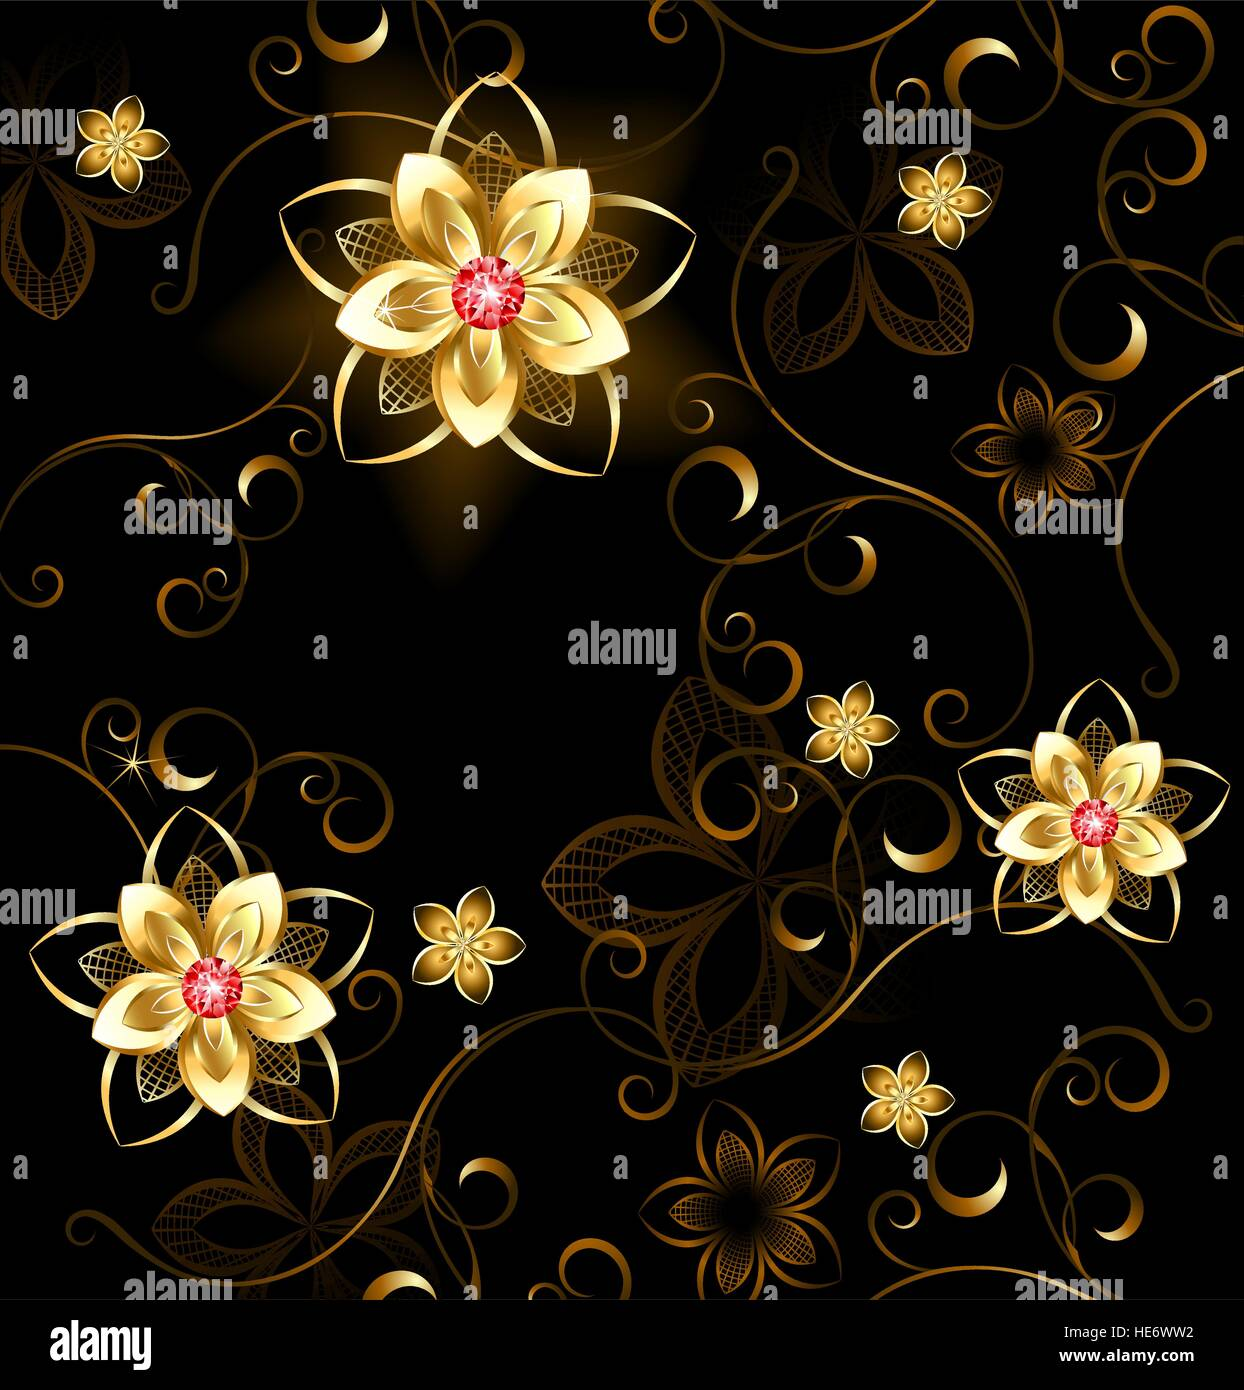 pattern of gilded flowers with bright rubies on a brown background - Stock Image